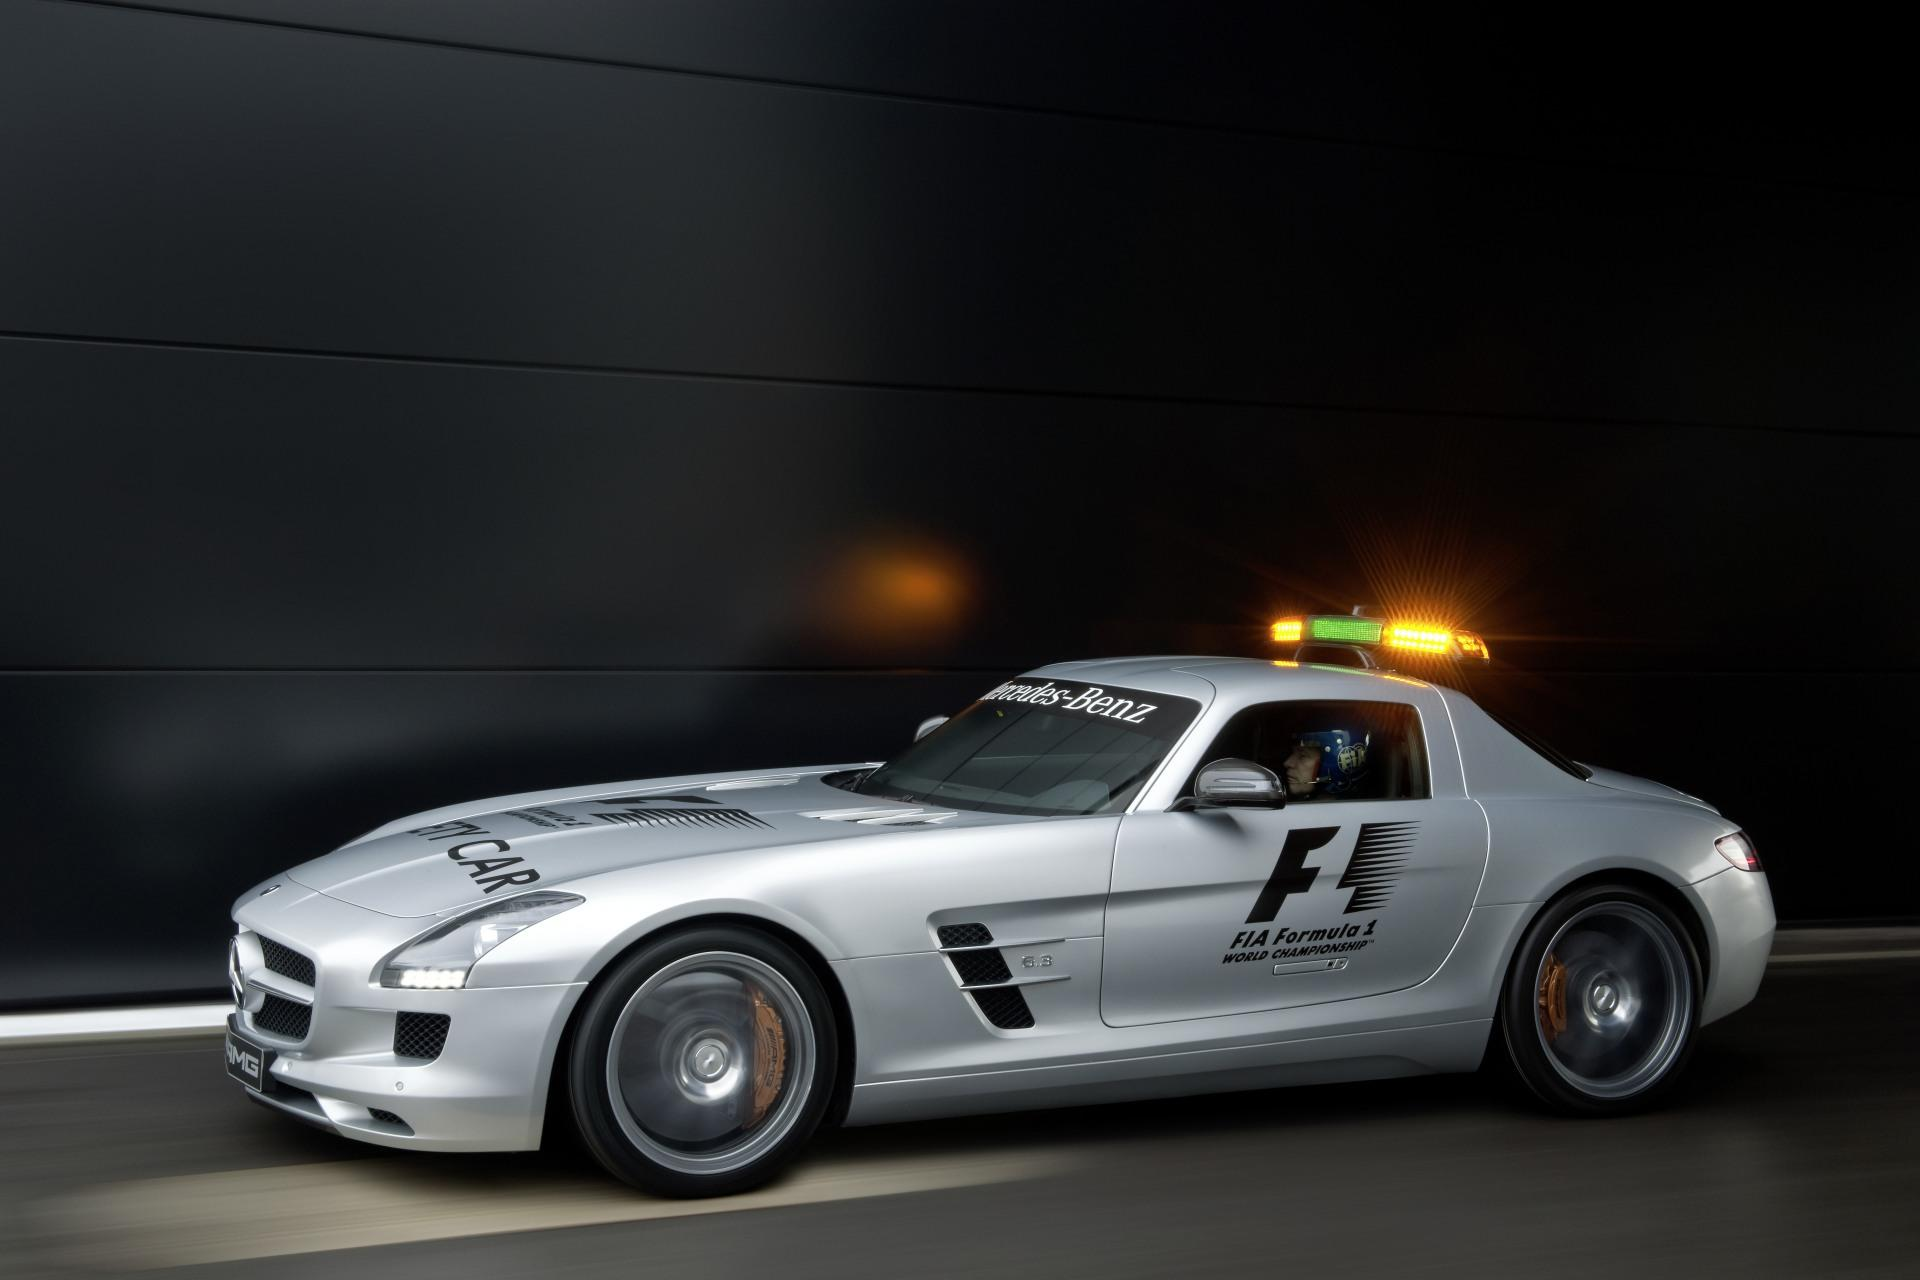 Amg Auto Sales >> 2010 Mercedes-Benz SLS AMG F1 Safety Car - conceptcarz.com